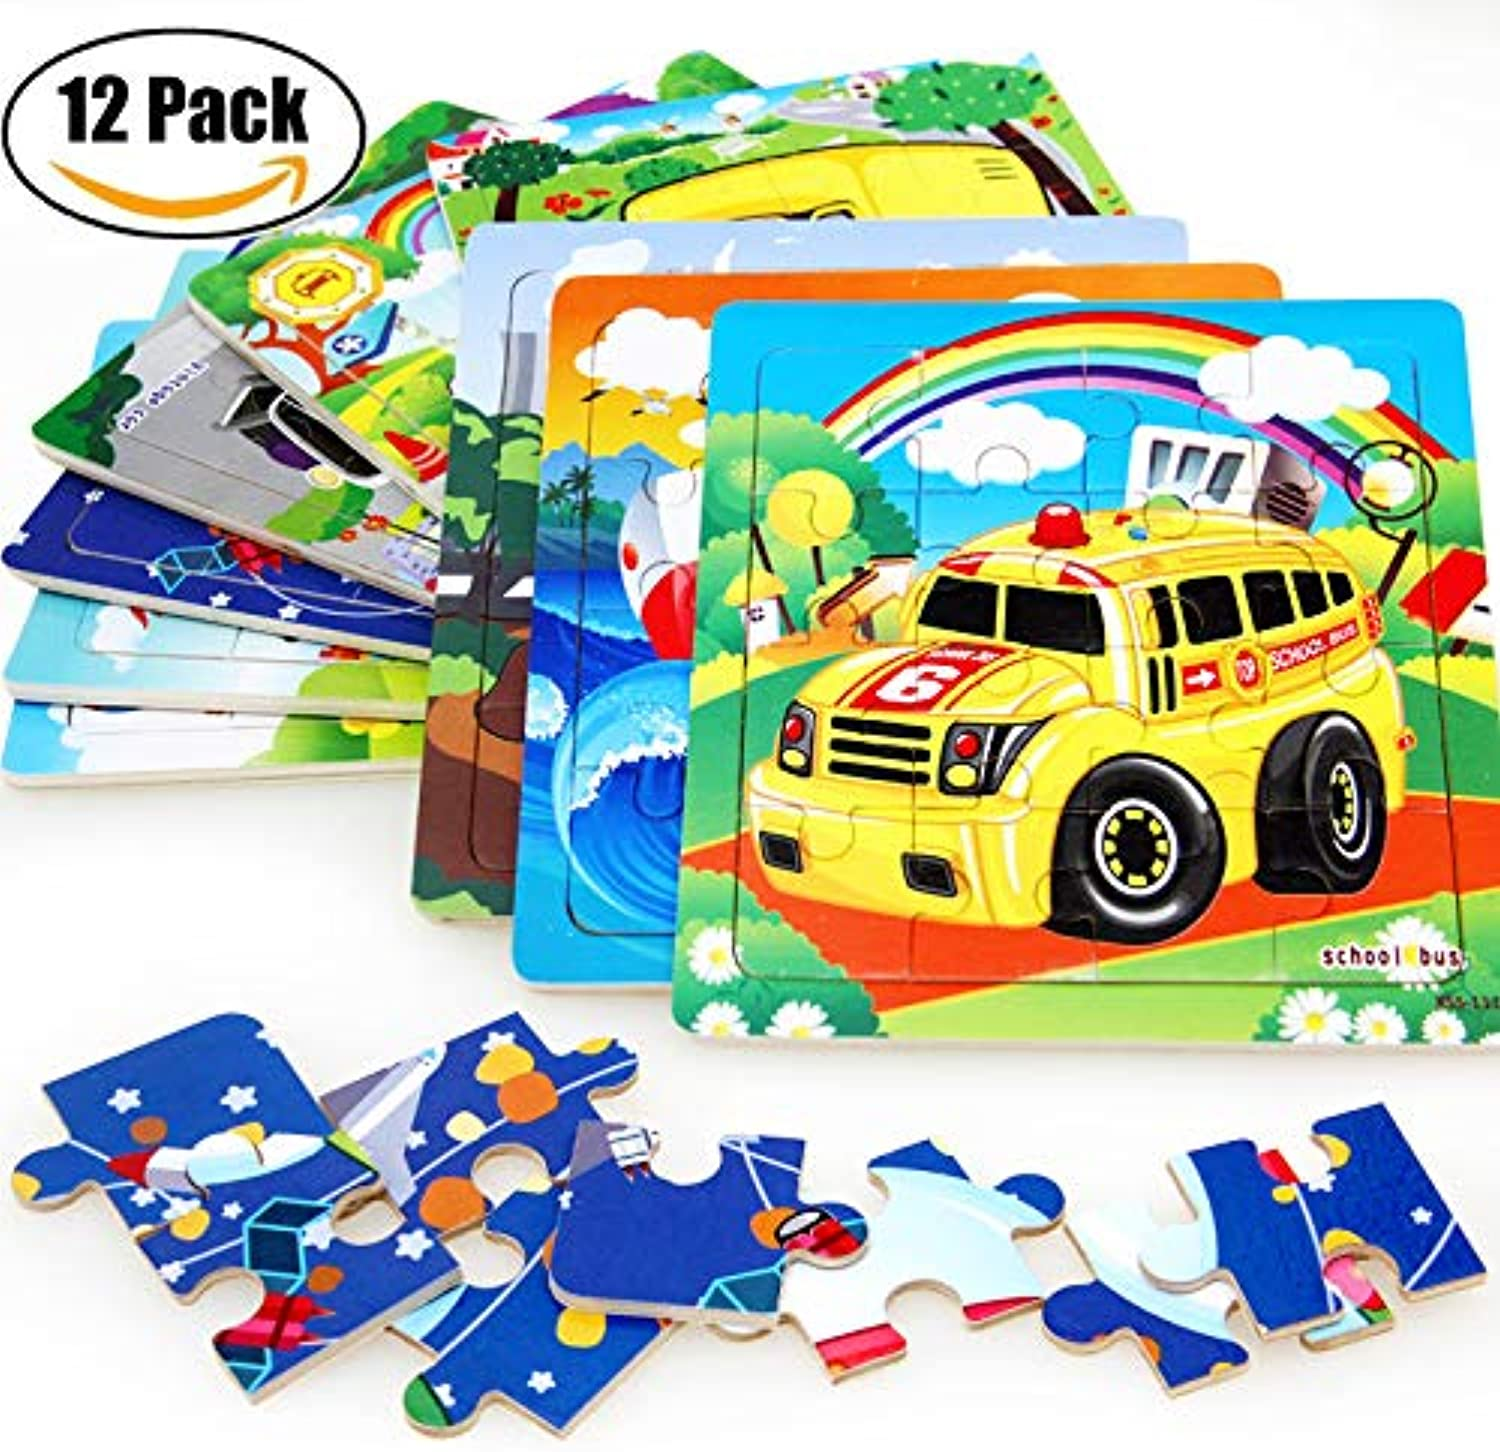 16 Pieces Jigsaw Puzzles for Toddlers, Kid Wooden Jigsaw Puzzle Toys Vegetable Fruit Vehicle, Ideal Birthday, 12 Pack (Vehicle)